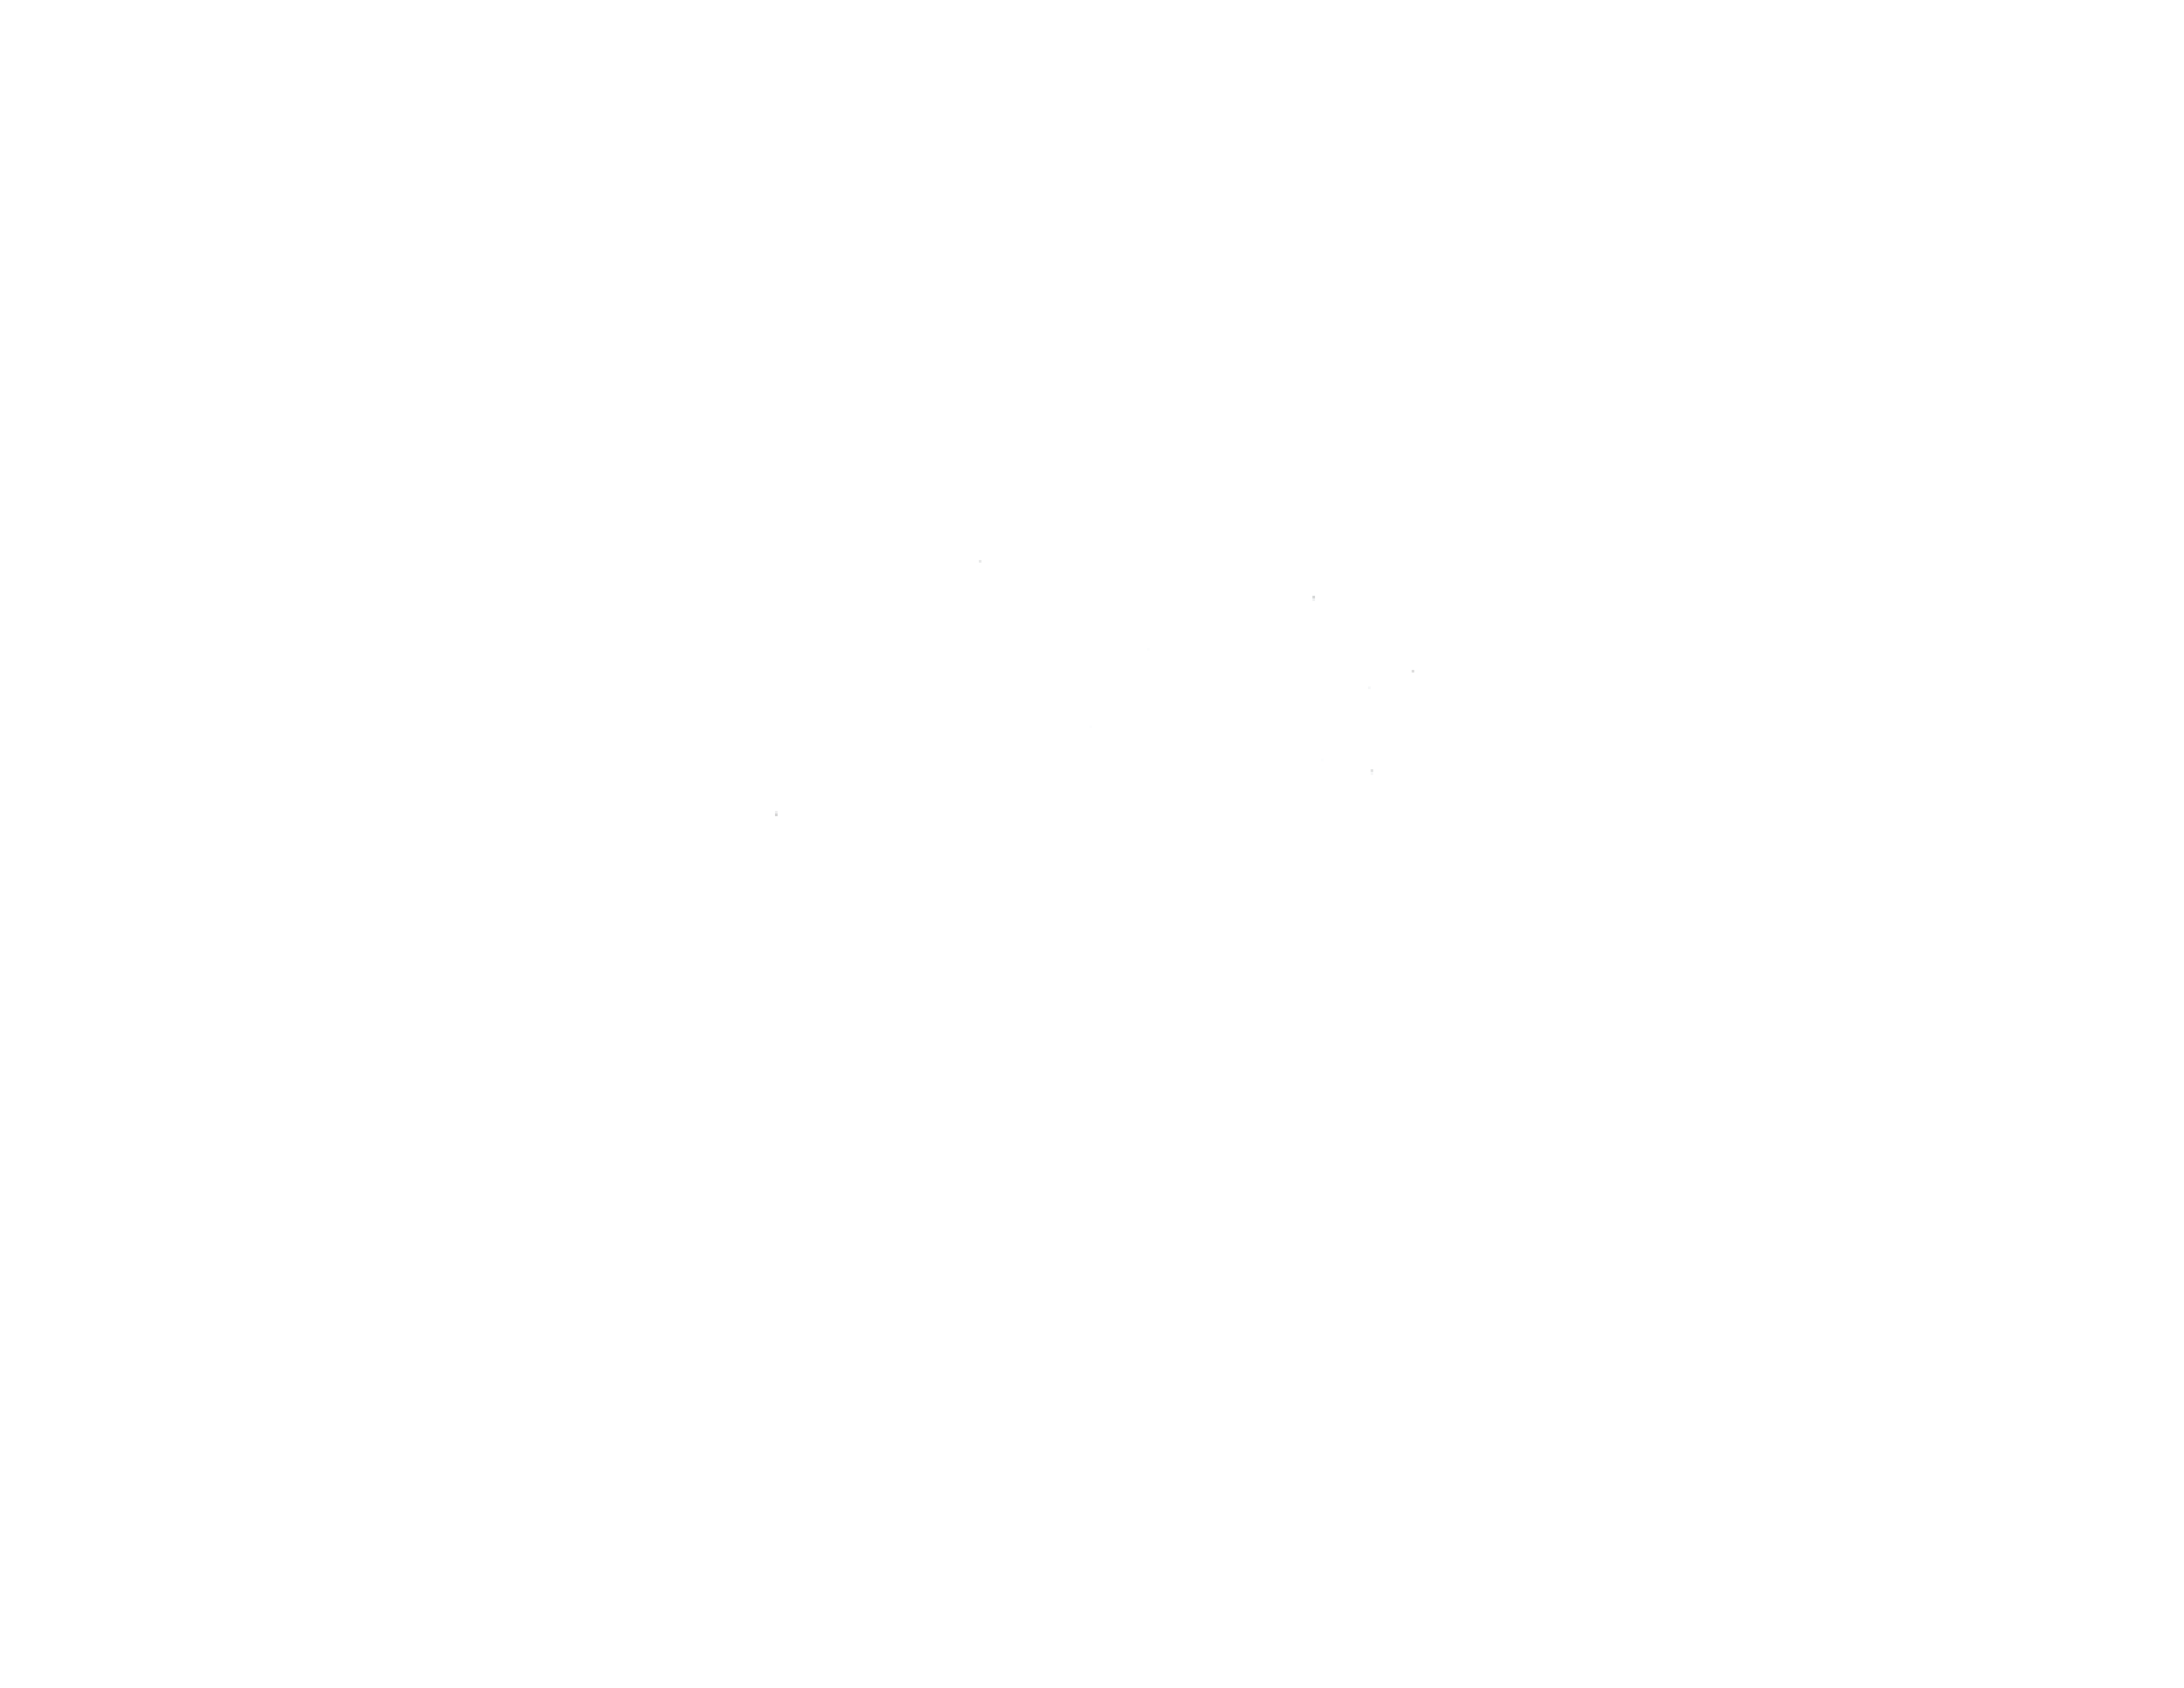 Kleiman Evangelista Eye Center